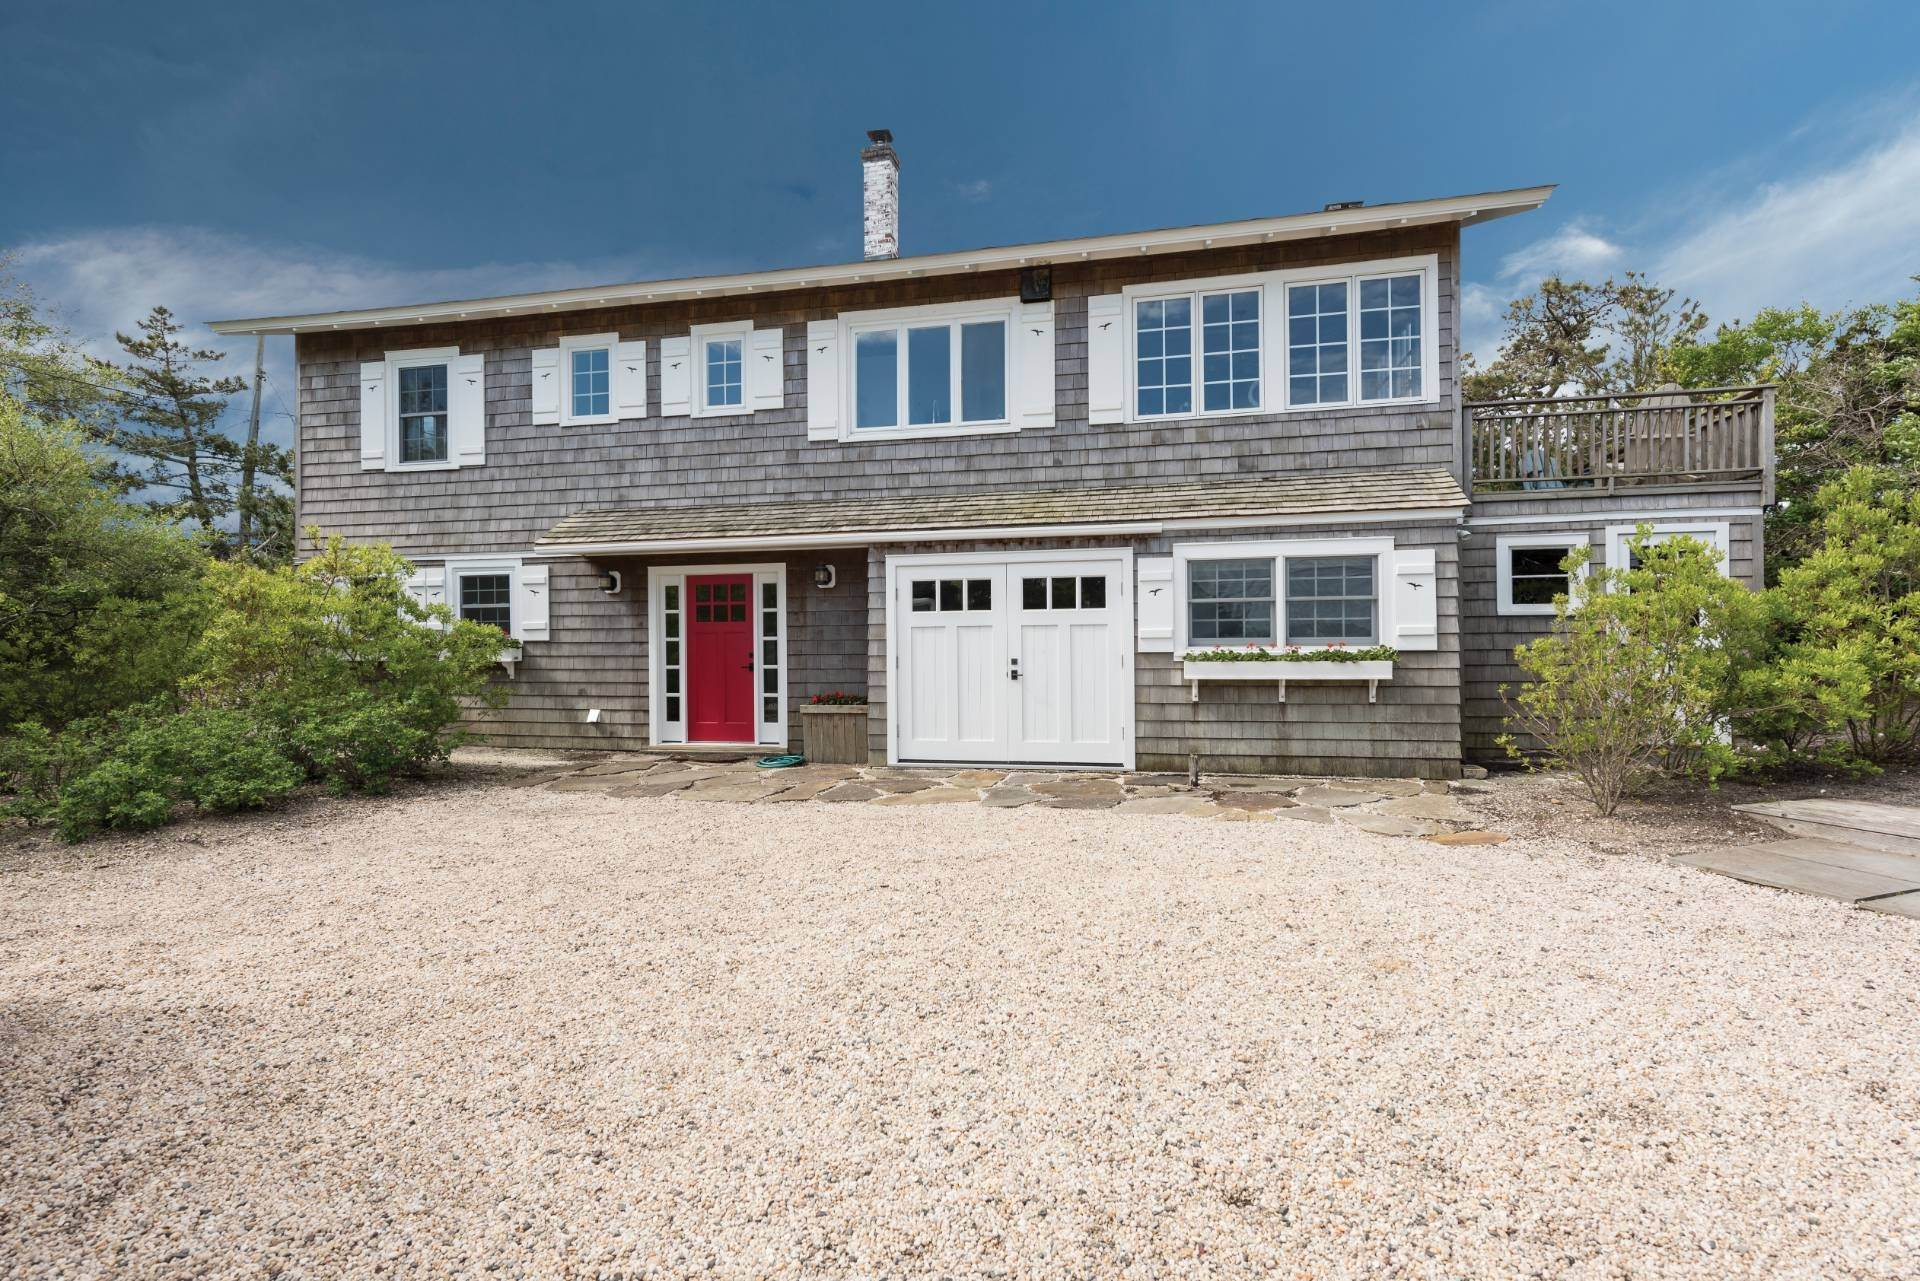 Single Family Homes at Nestled In The Dunes Of Desirable Quogue Village Quogue Village, Southampton Town, NY 11959